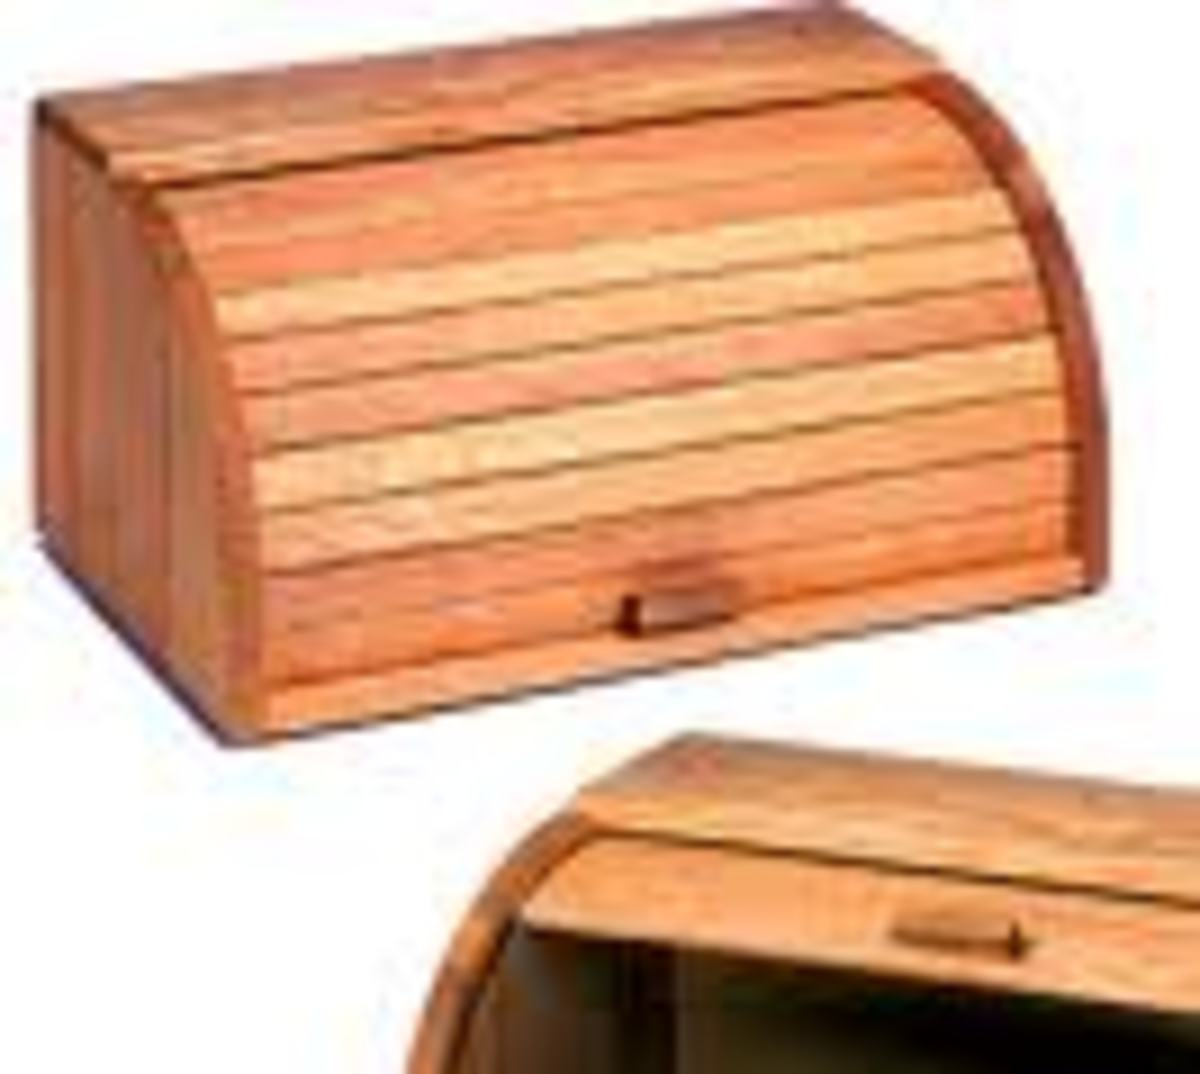 Breadbox with tambour.